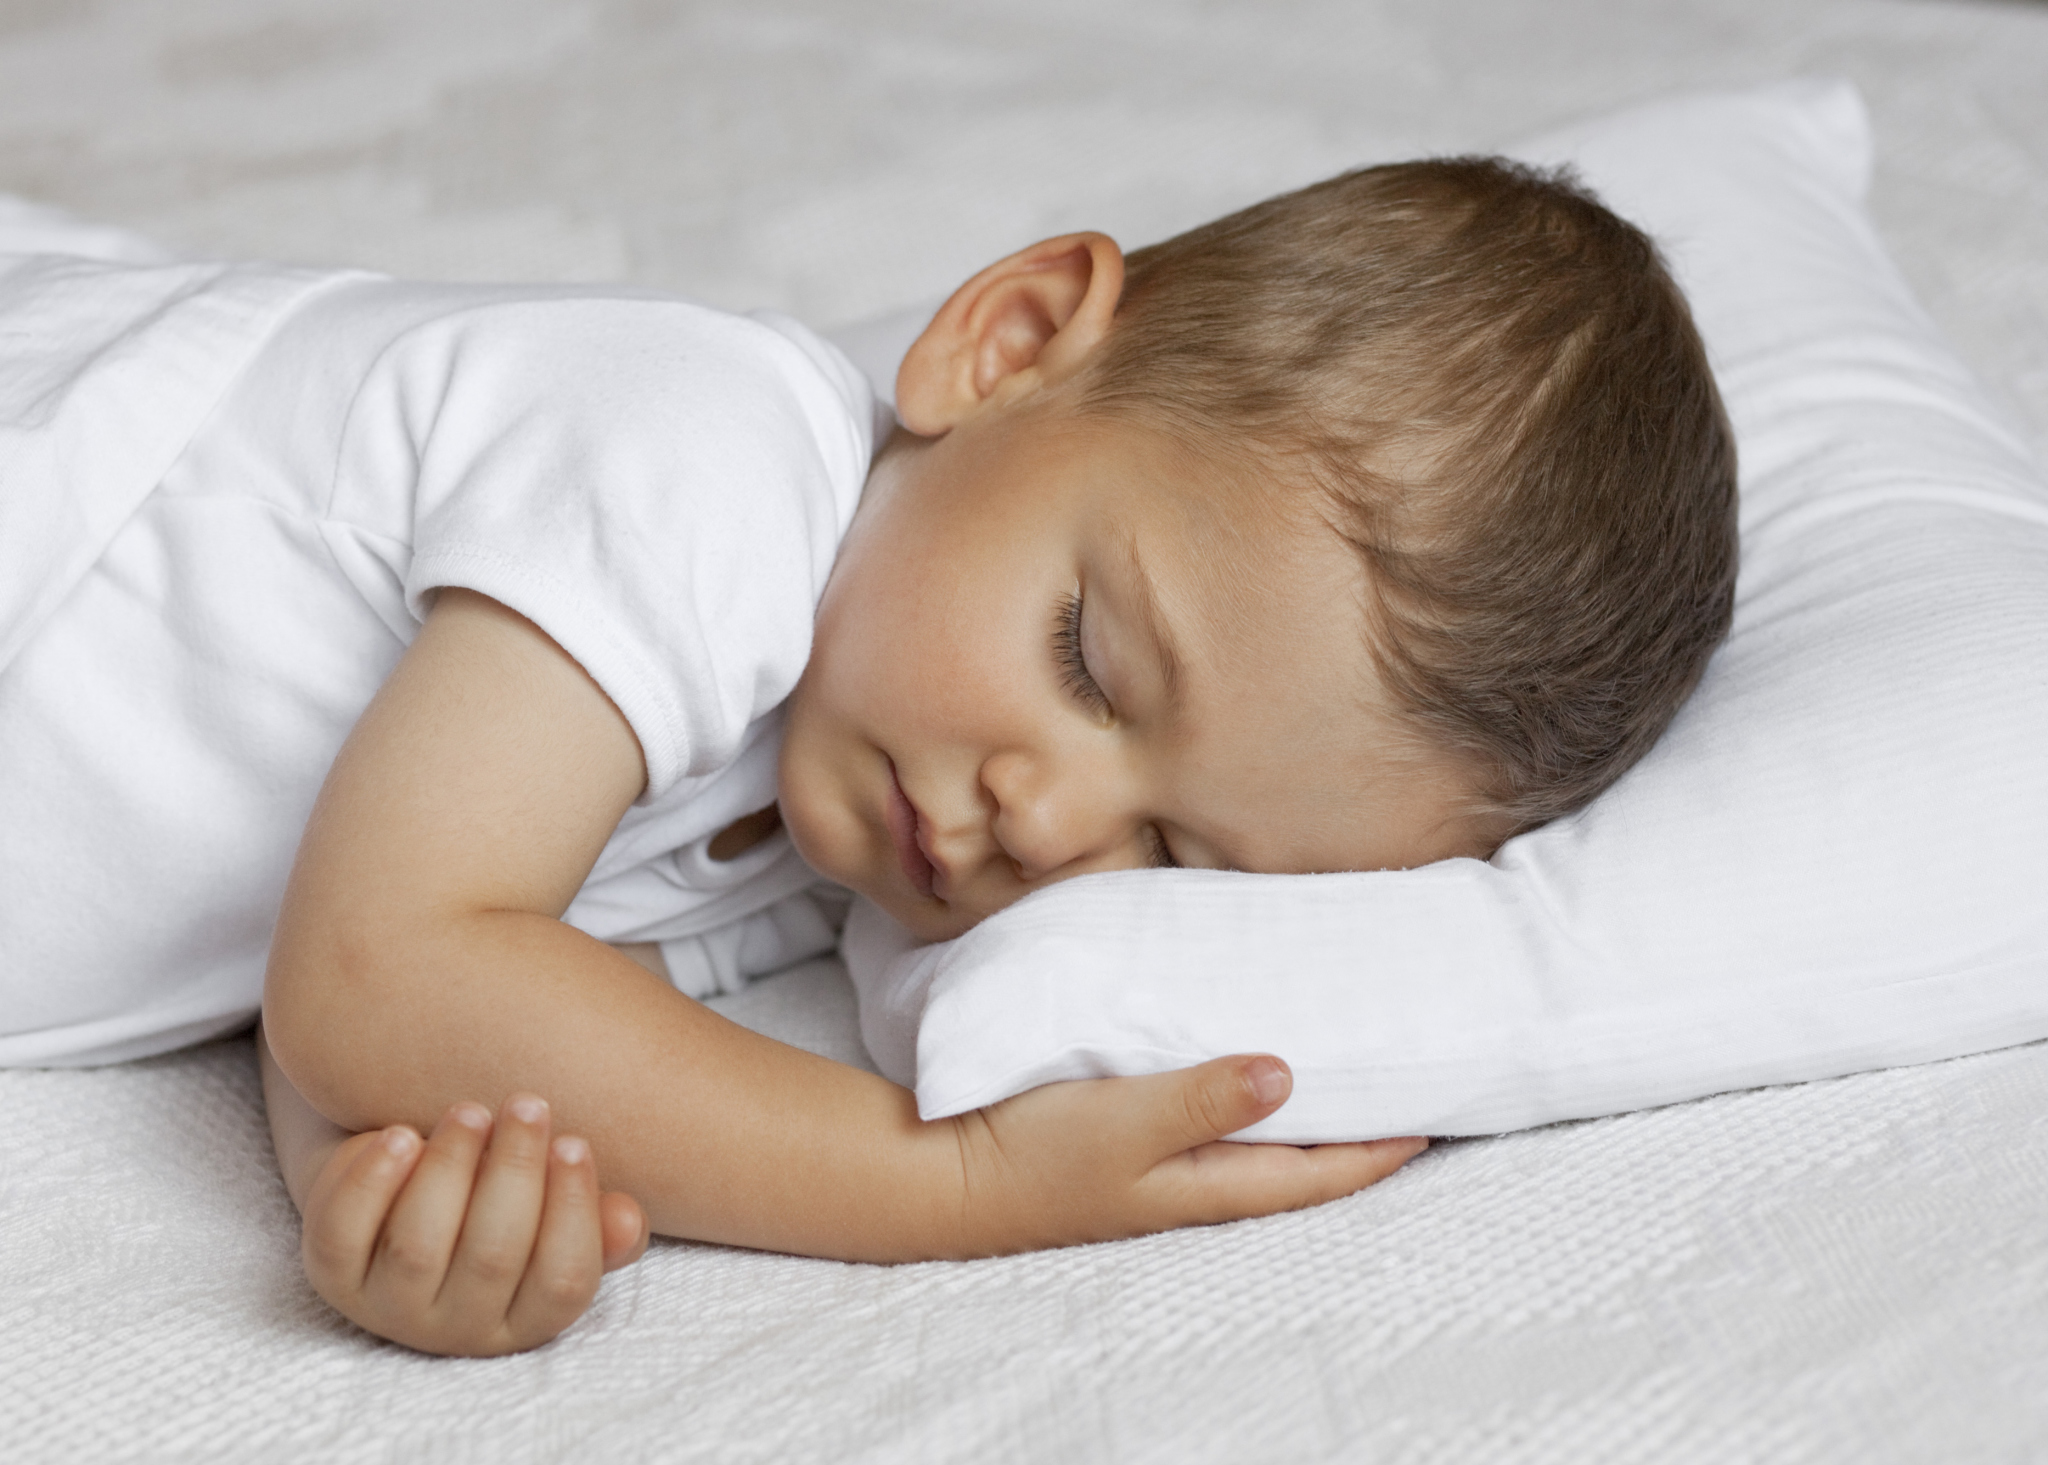 sleeping, sleeping habits, toddler, schedule, sleep schedule, wake up, bedtime, tired, positive association, ways to improve your toddlers sleeping patterns, toddlers, toddlers sleeping patterns